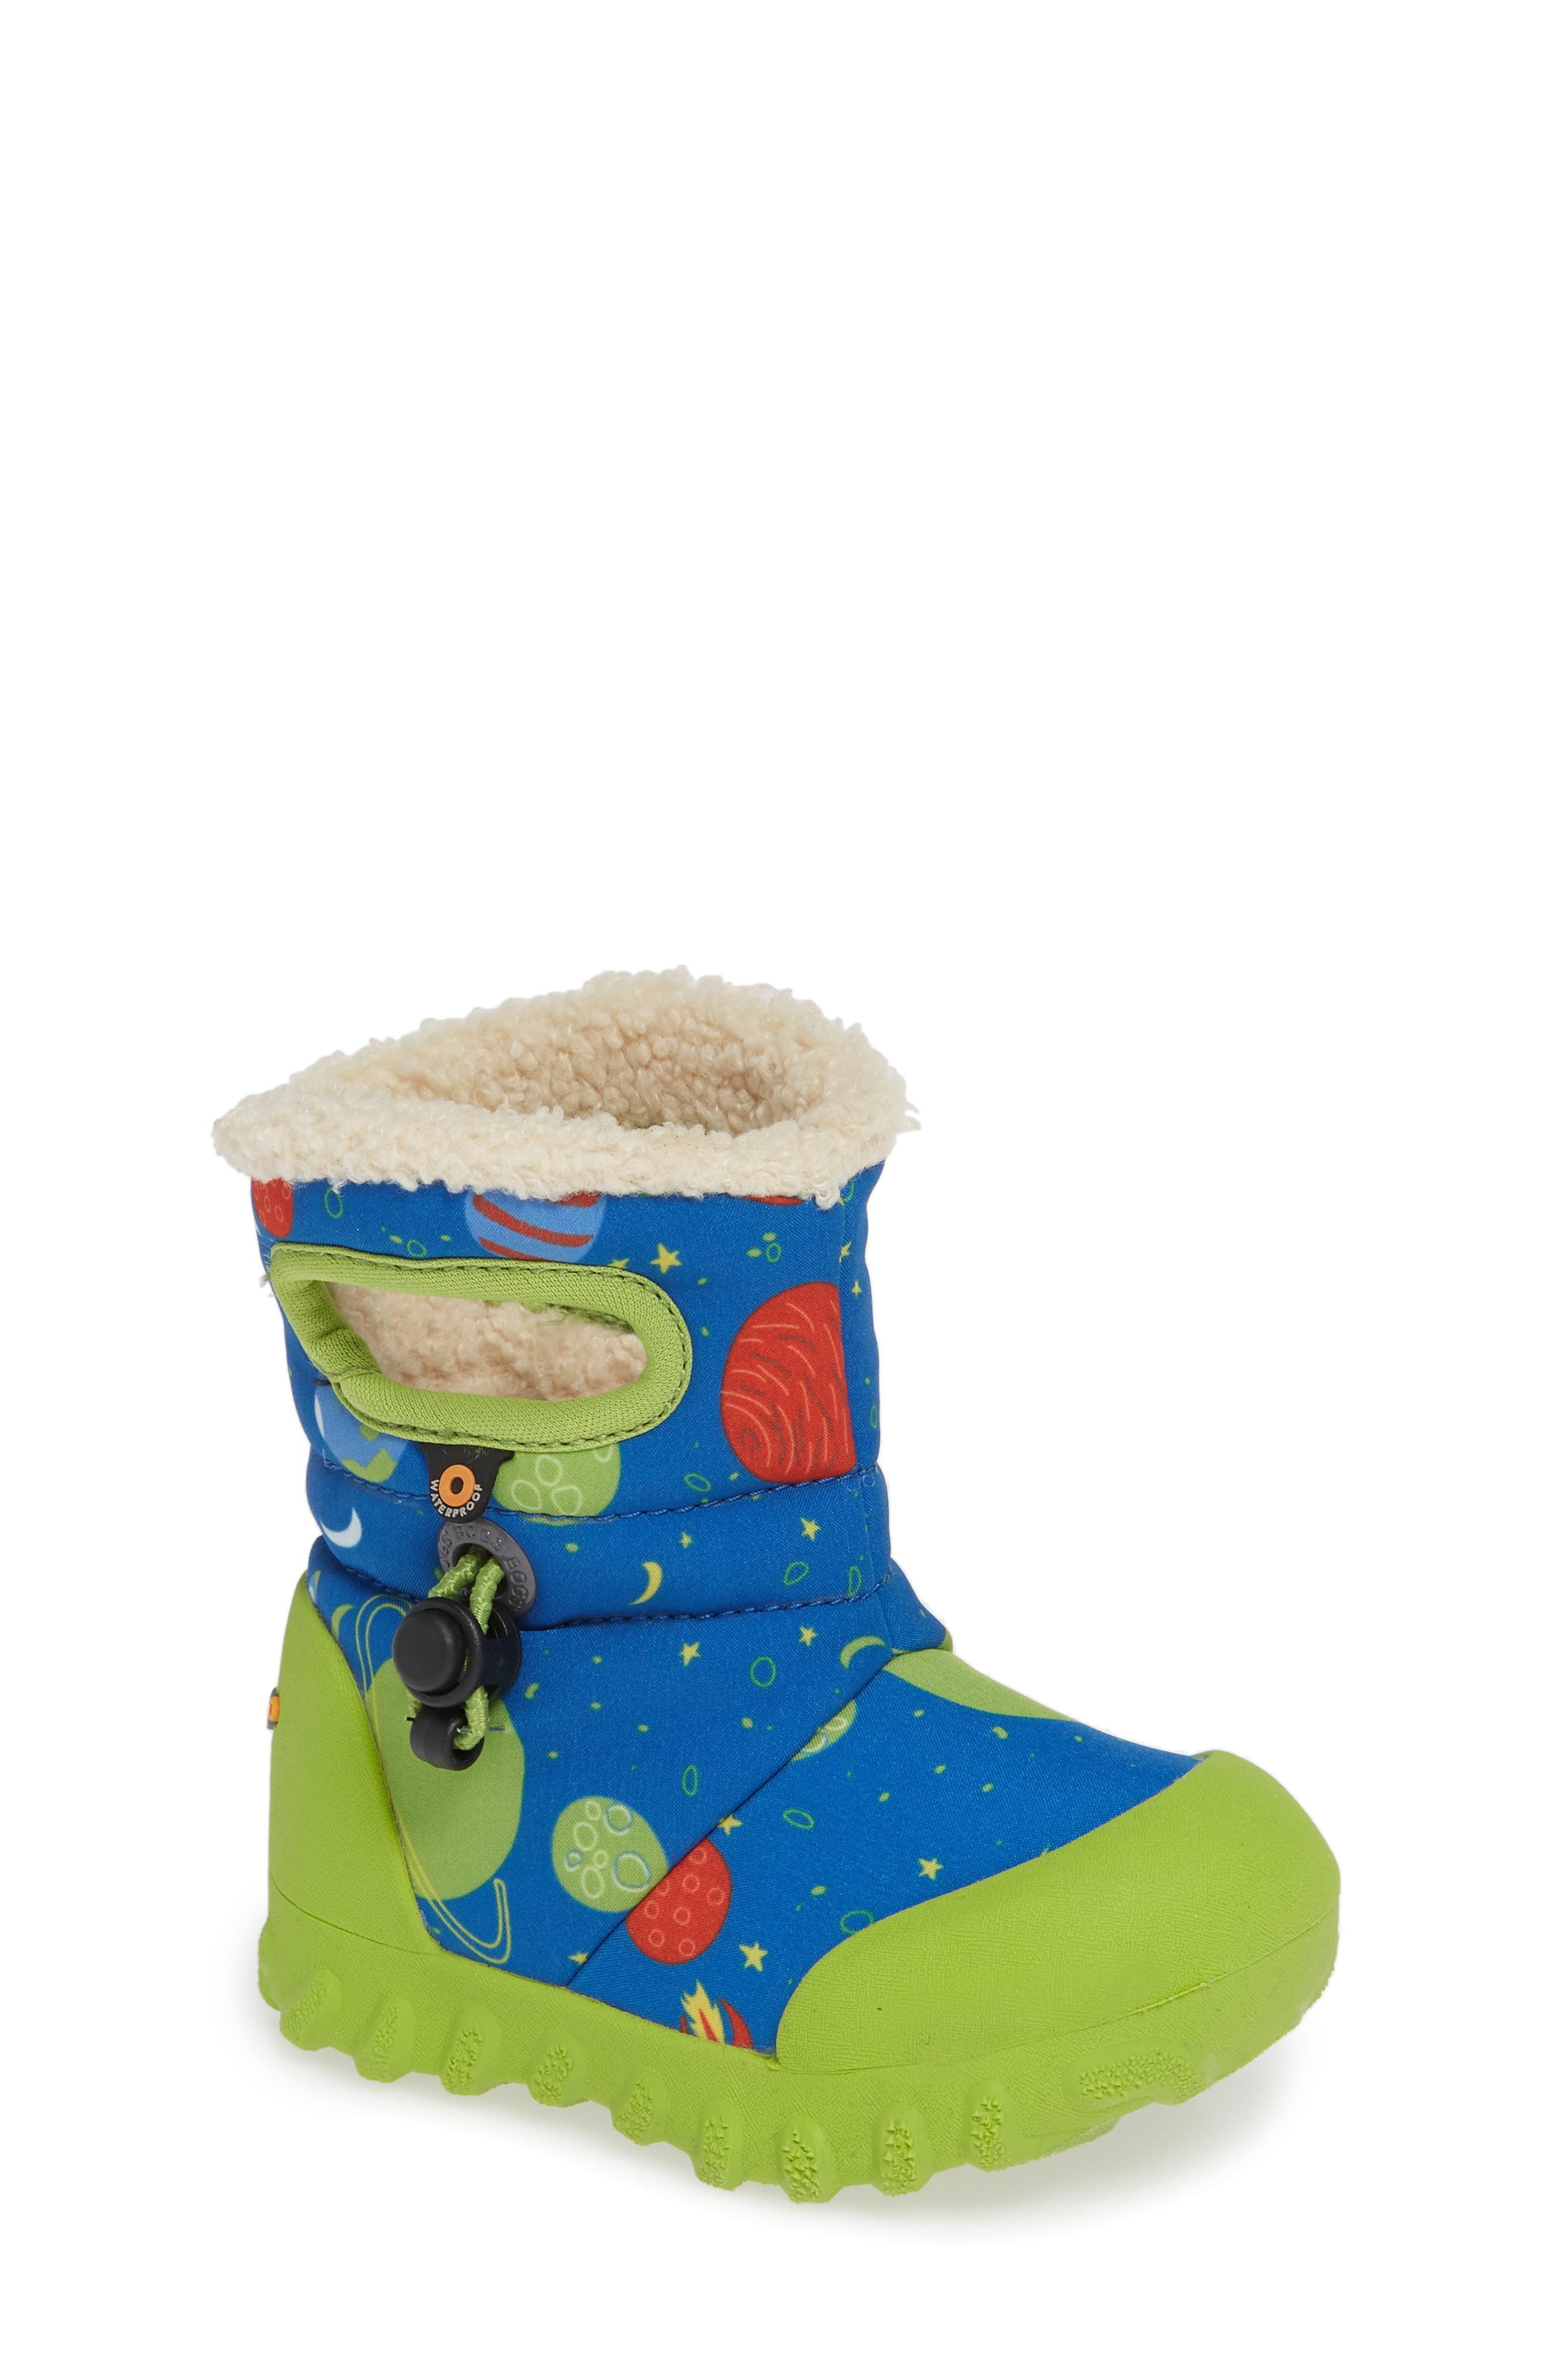 BOGS, B-MOC Space Waterproof Insulated Faux Fur Boot, Main thumbnail 1, color, BLUE MULTI